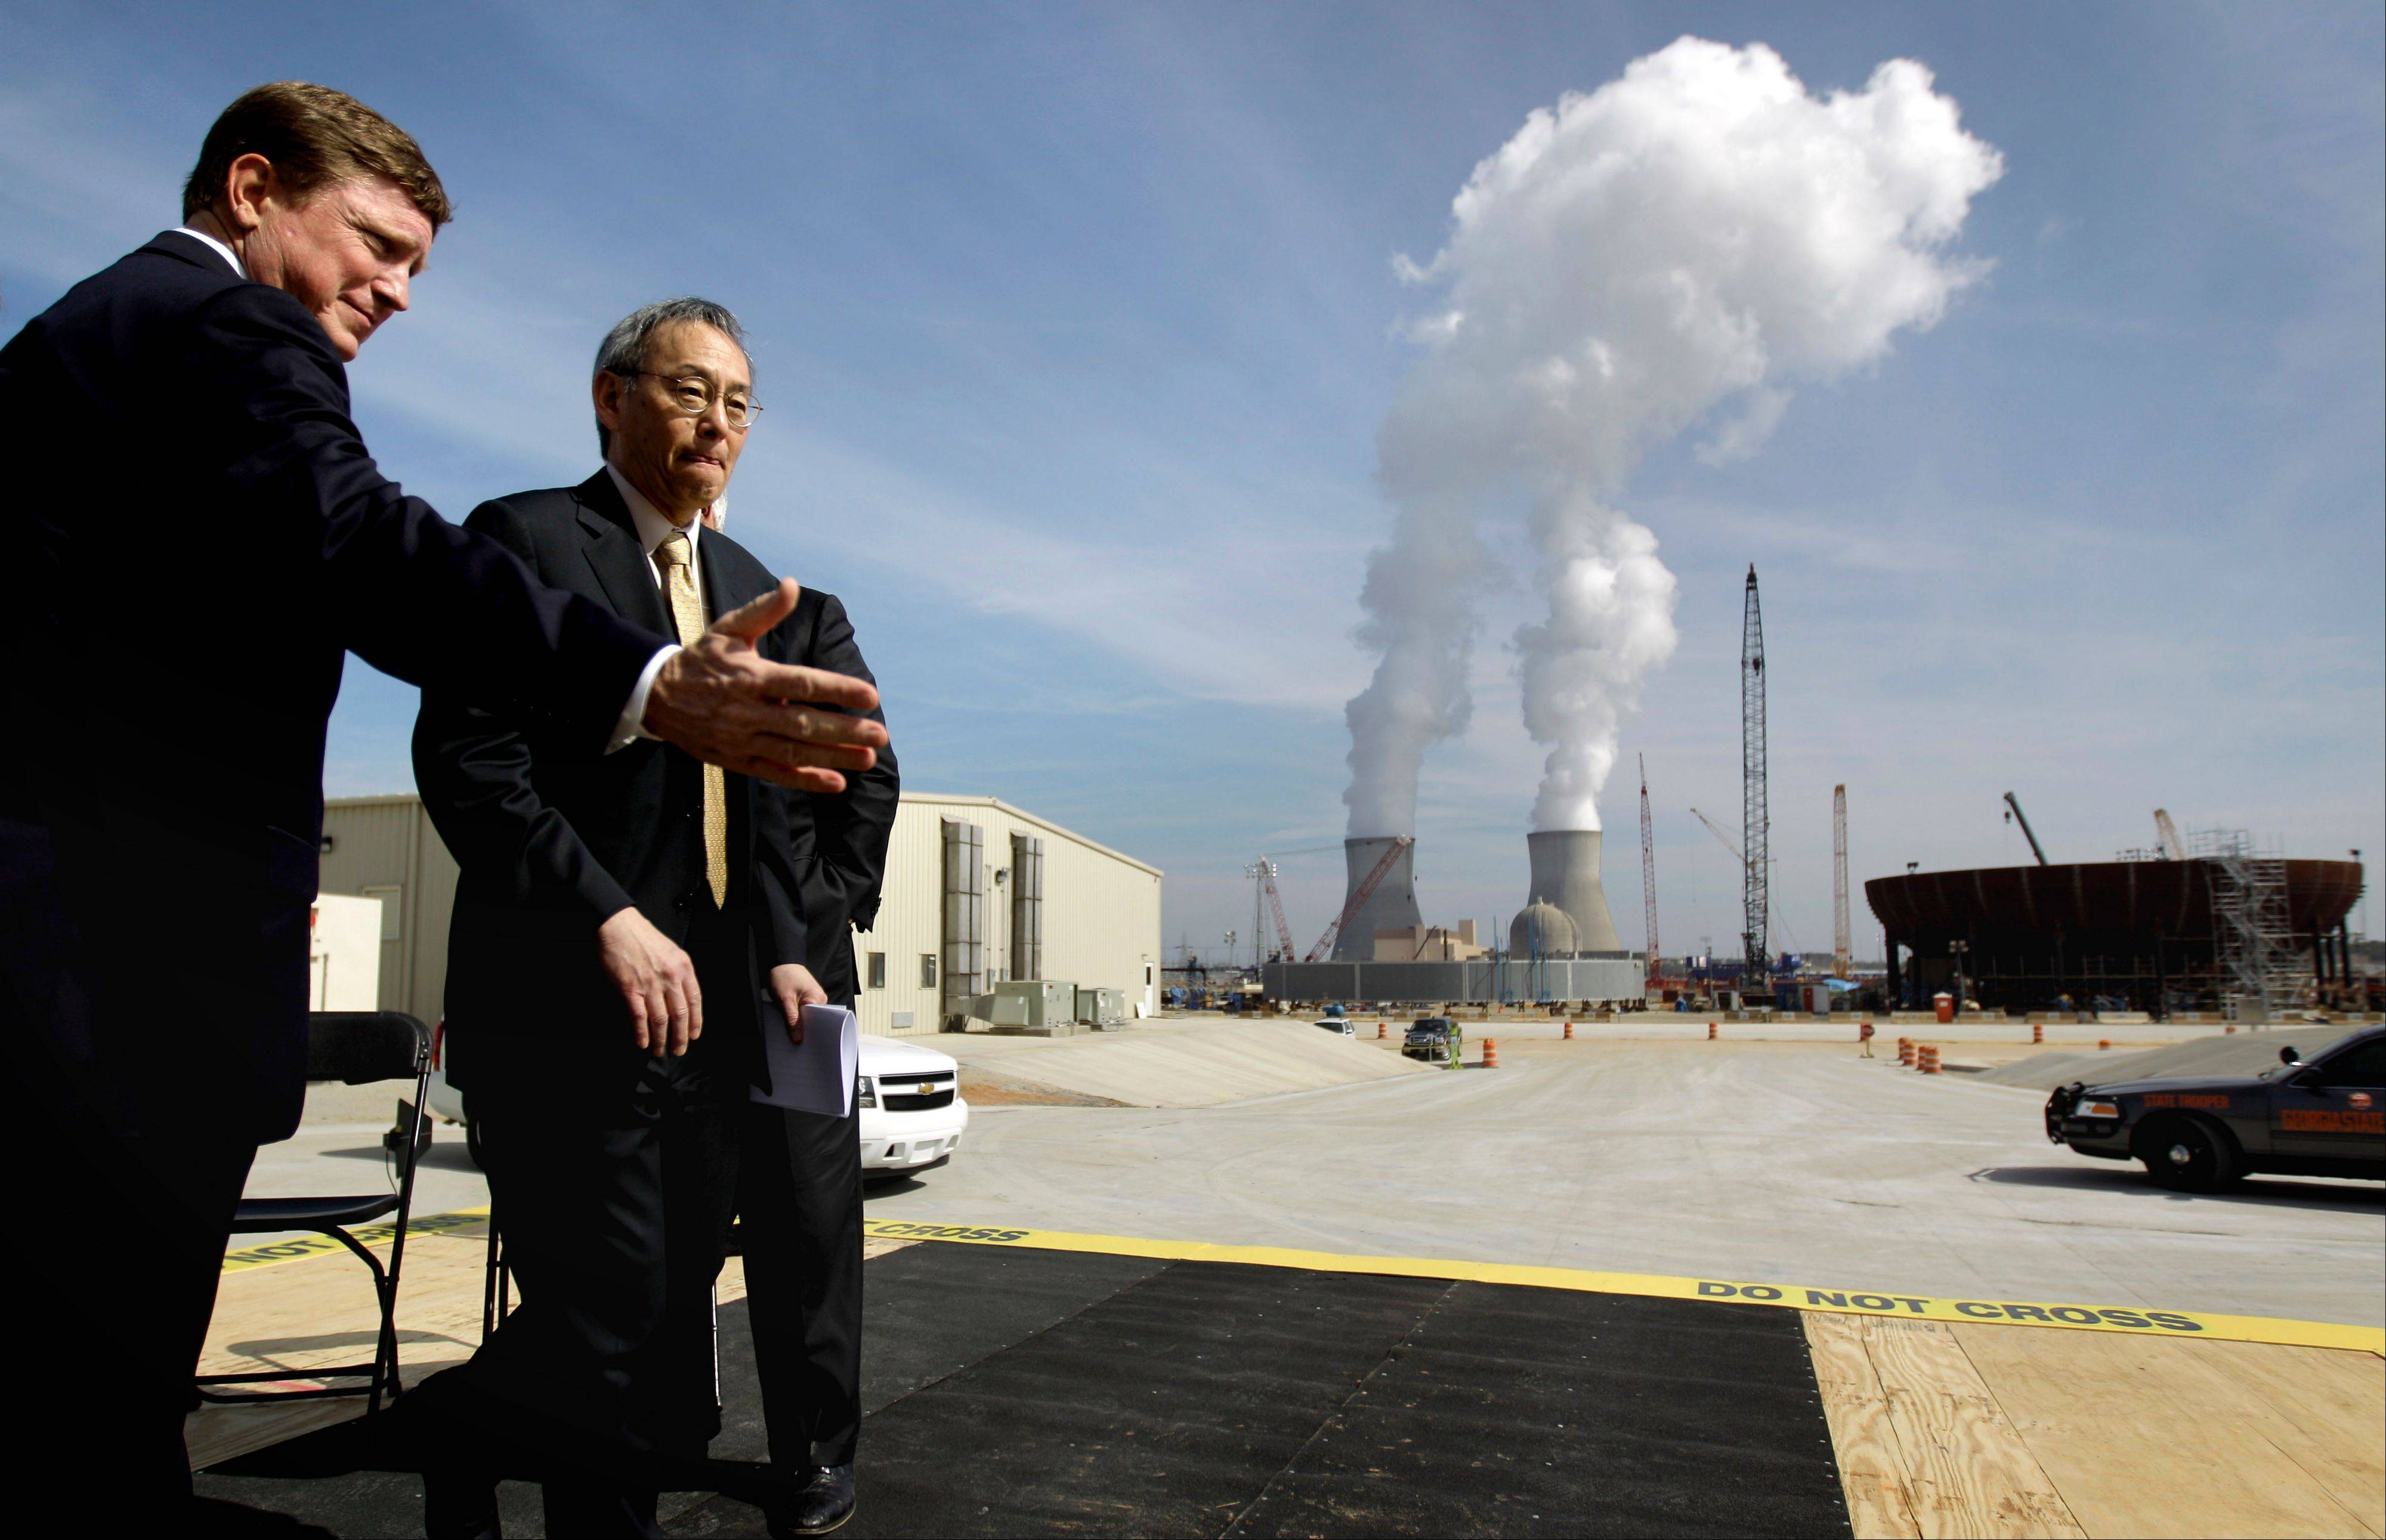 U.S. Secretary of Energy Steven Chu, right, exits the stage with Southern Co. President and CEO Thomas Fanning on Feb. 15 as cooling towers for units 1 and 2 are seen in the background at left and the new reactor vessel bottom head for Unit 3 stands under construction at right. Chu visited the Vogtle nuclear power plant in Waynesboro, Ga. Vogtle, initially estimated to cost $14 billion, has run into more than $800 million in extra charges related to licensing delays. A state monitor has said bluntly that co-owner Southern Co. can't stick to its budget. The plant, whose first reactor was supposed to be operational by April 2016, is now delayed seven months.